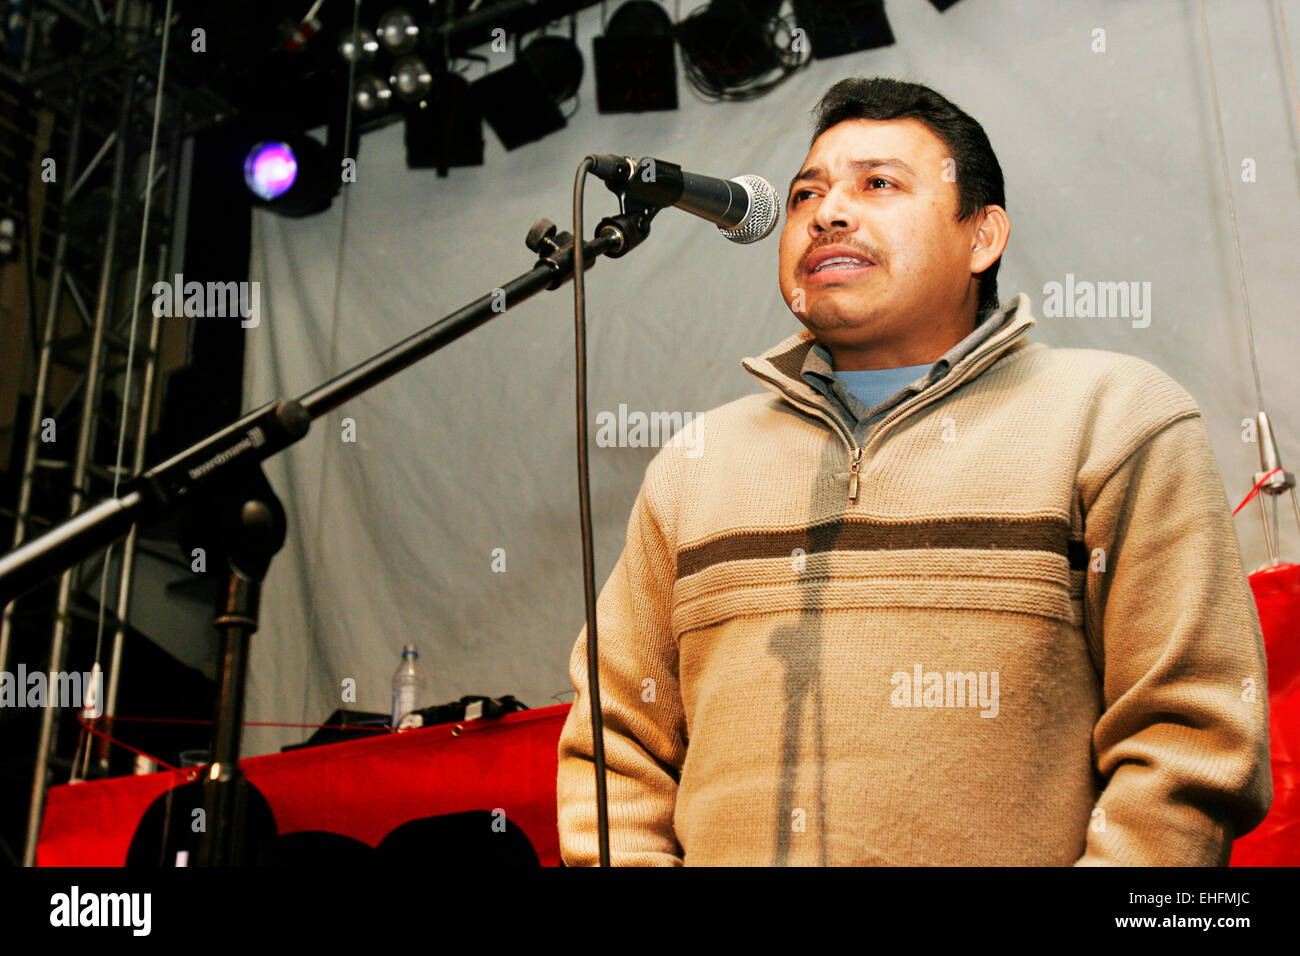 Speaker at the Latin Hip Hop and Reggaeton Festival at The Carling Academy Islington London. - Stock Image